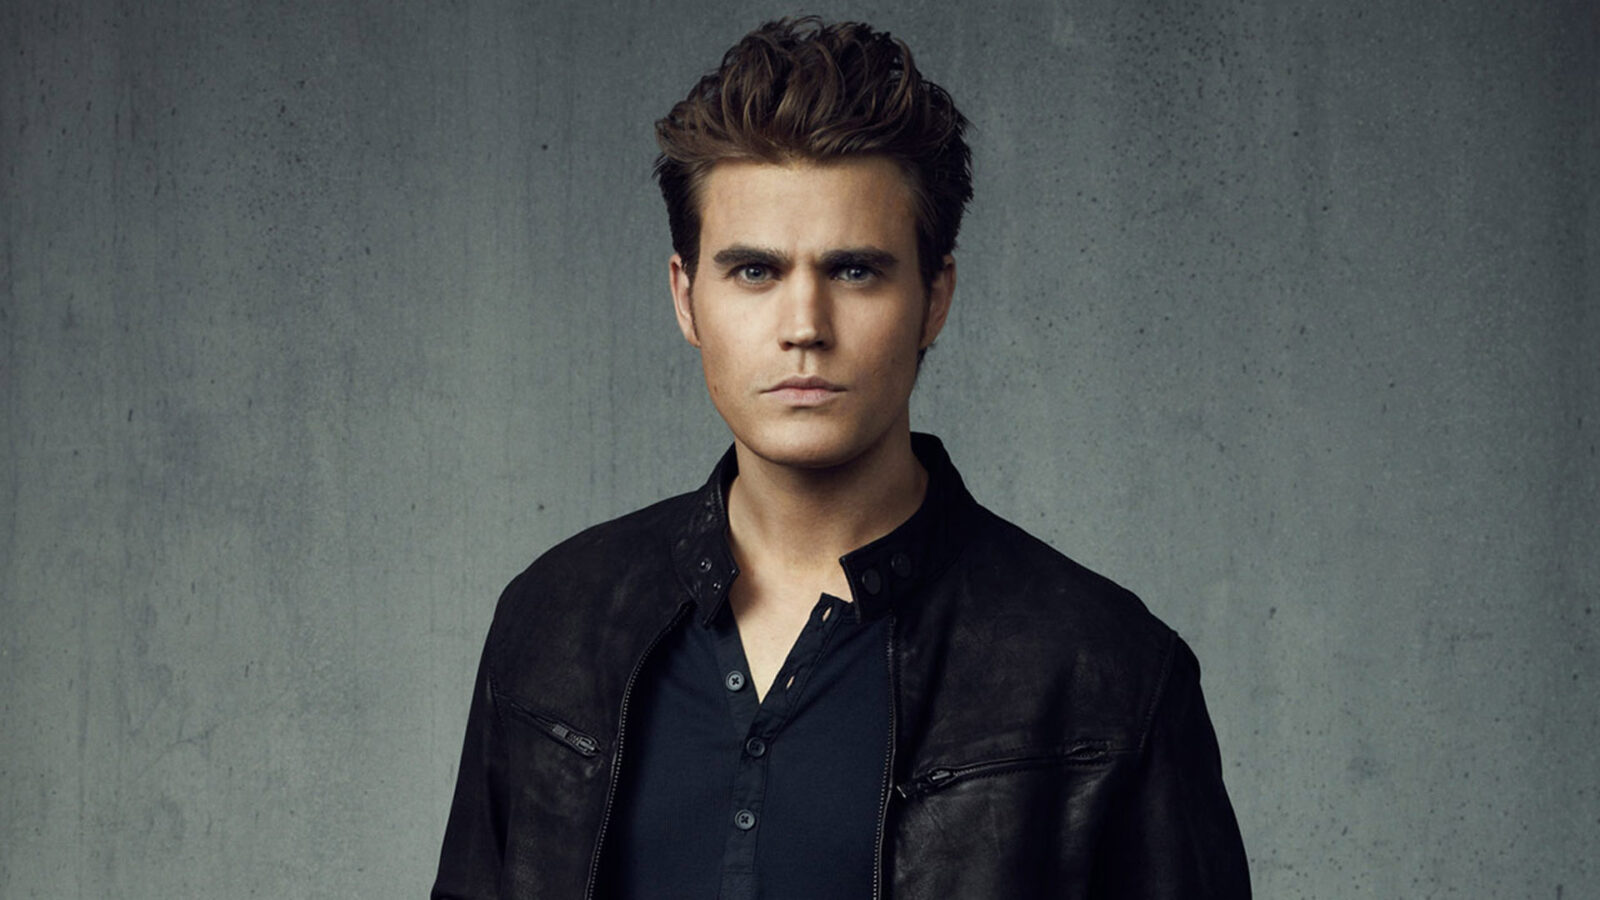 Vampire Diaries Hd Wallpapers 1366x768 Paul Wesley Wallpapers Hd Free Download